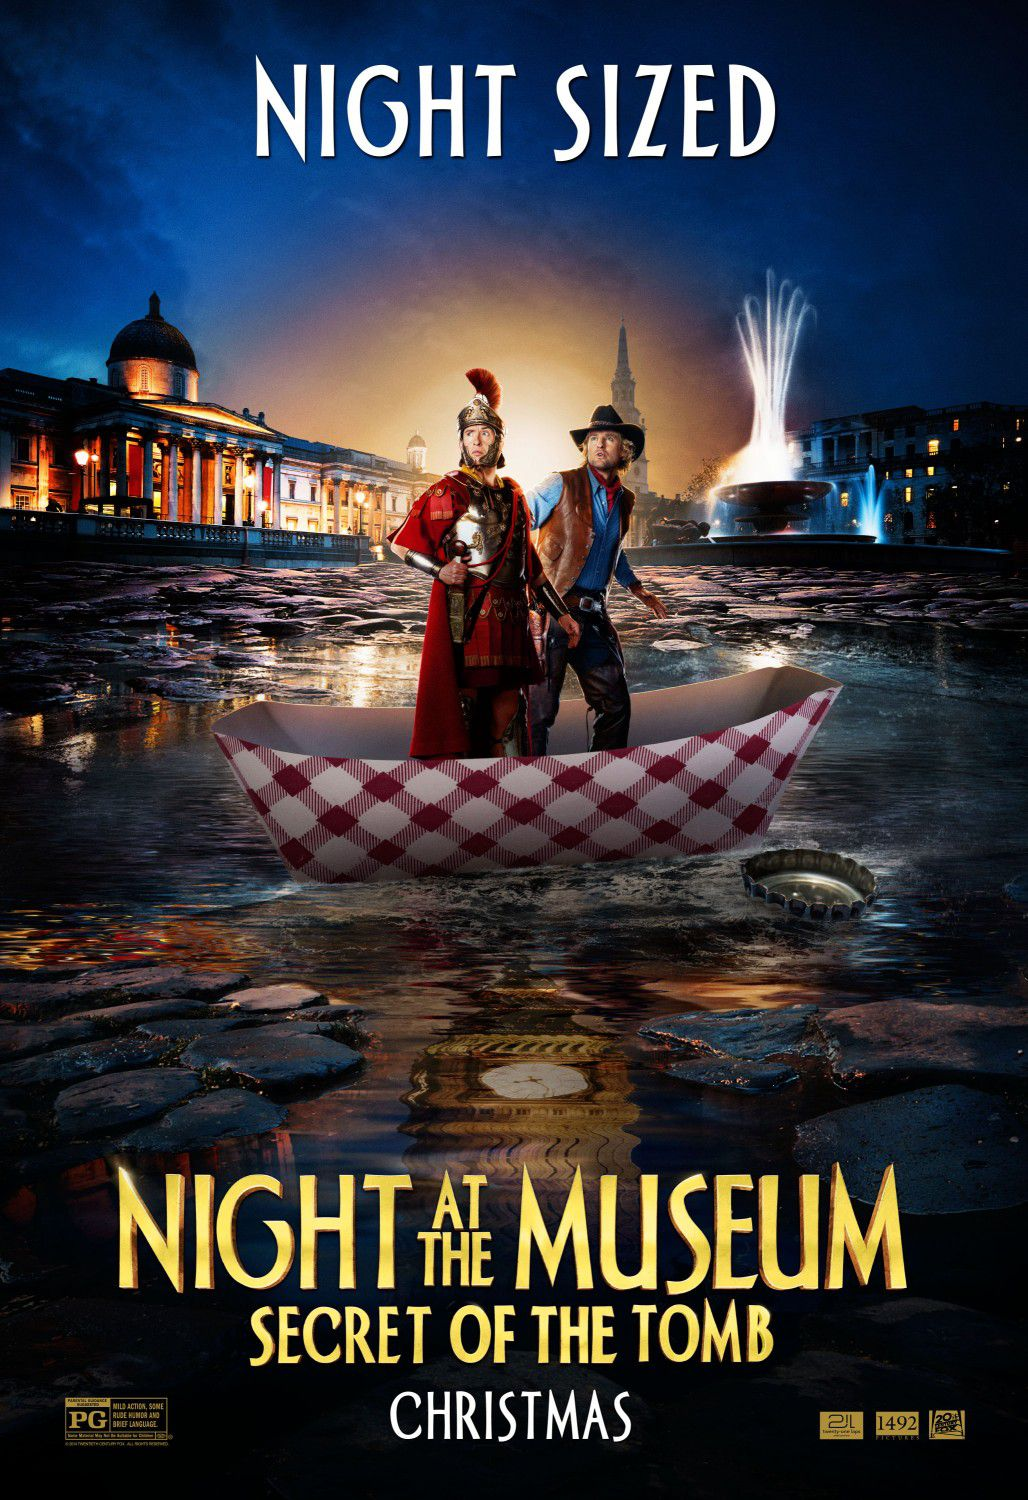 Una Notte al Museo 3 - Night at the Museum 3 - Secret of the Tomb - poster - night sized - Owen Wilson